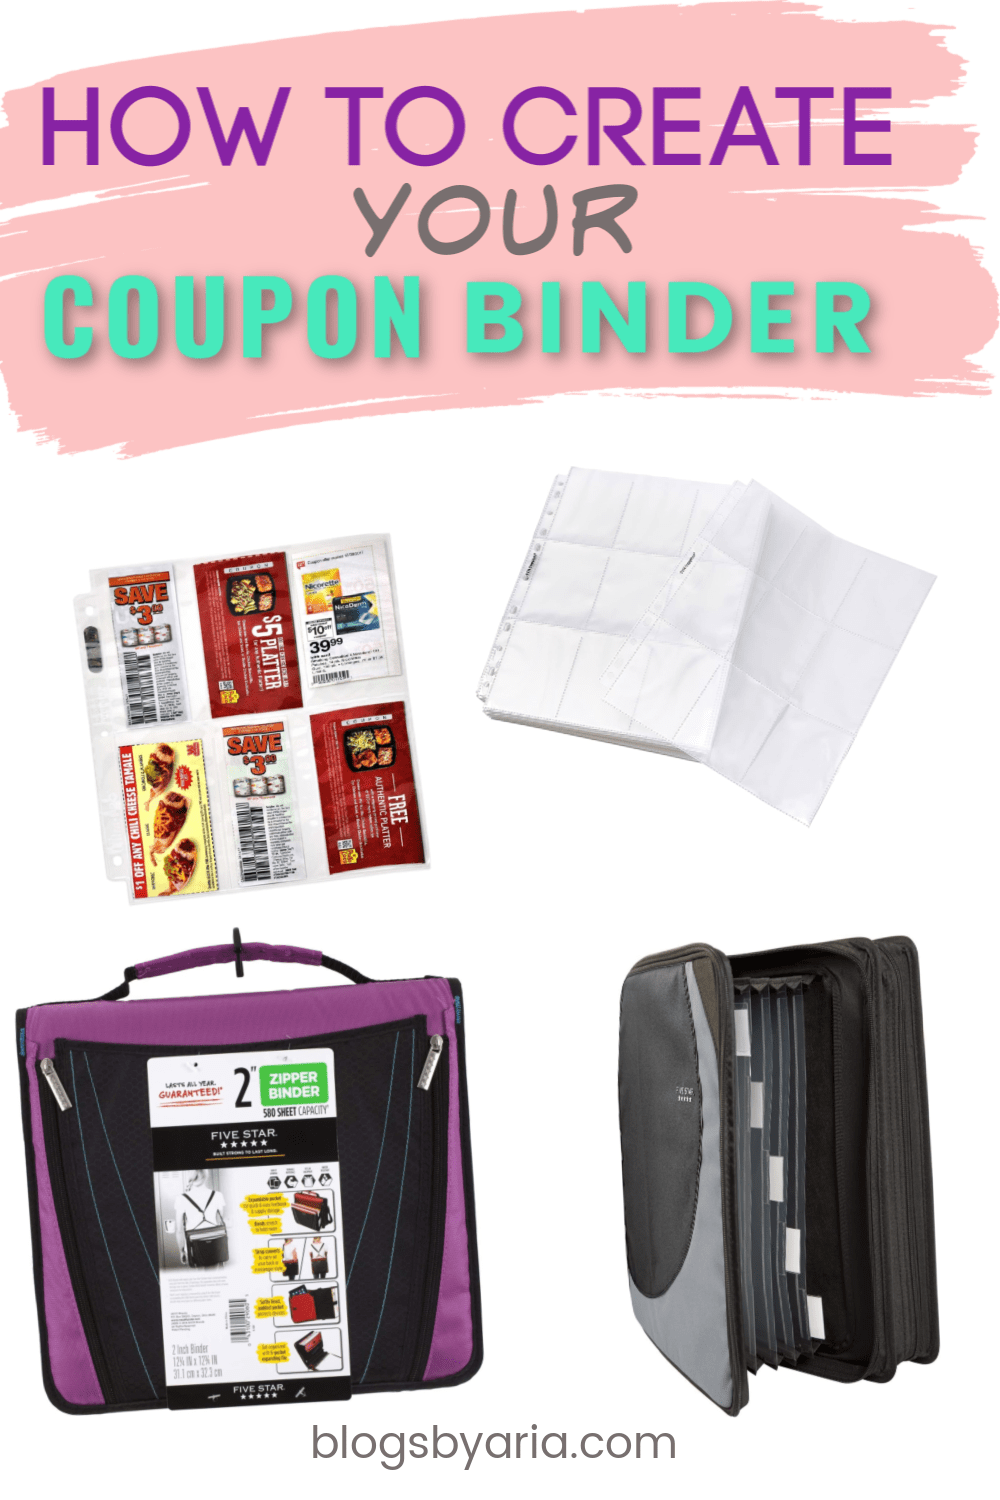 how to create your coupon binder